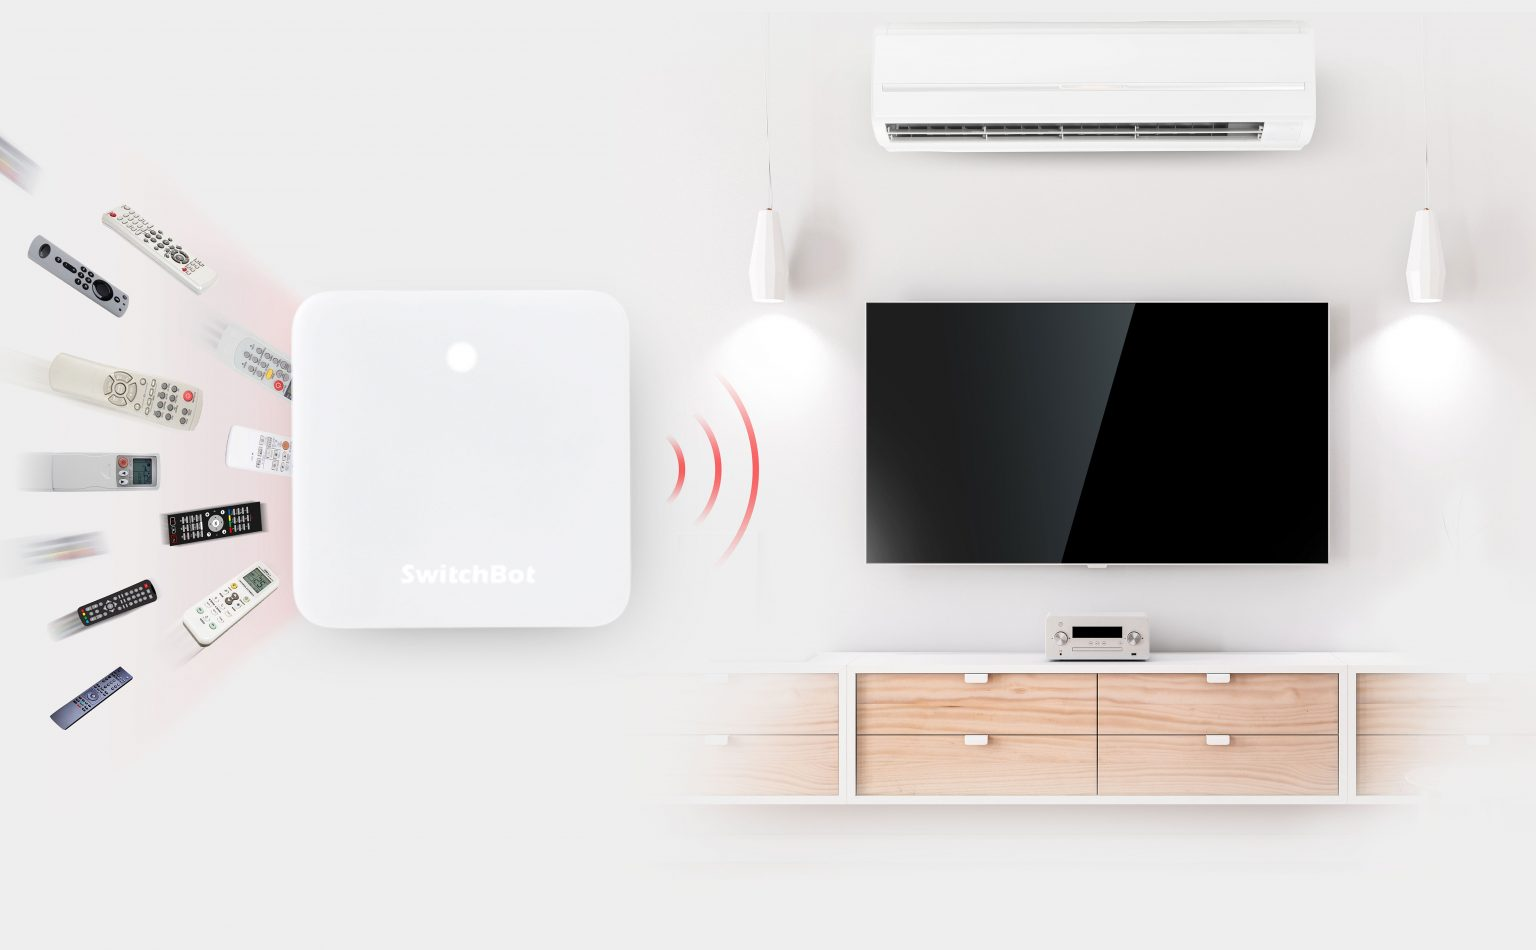 SwitchBot Hub Mini simplifies and enhances your home automation.